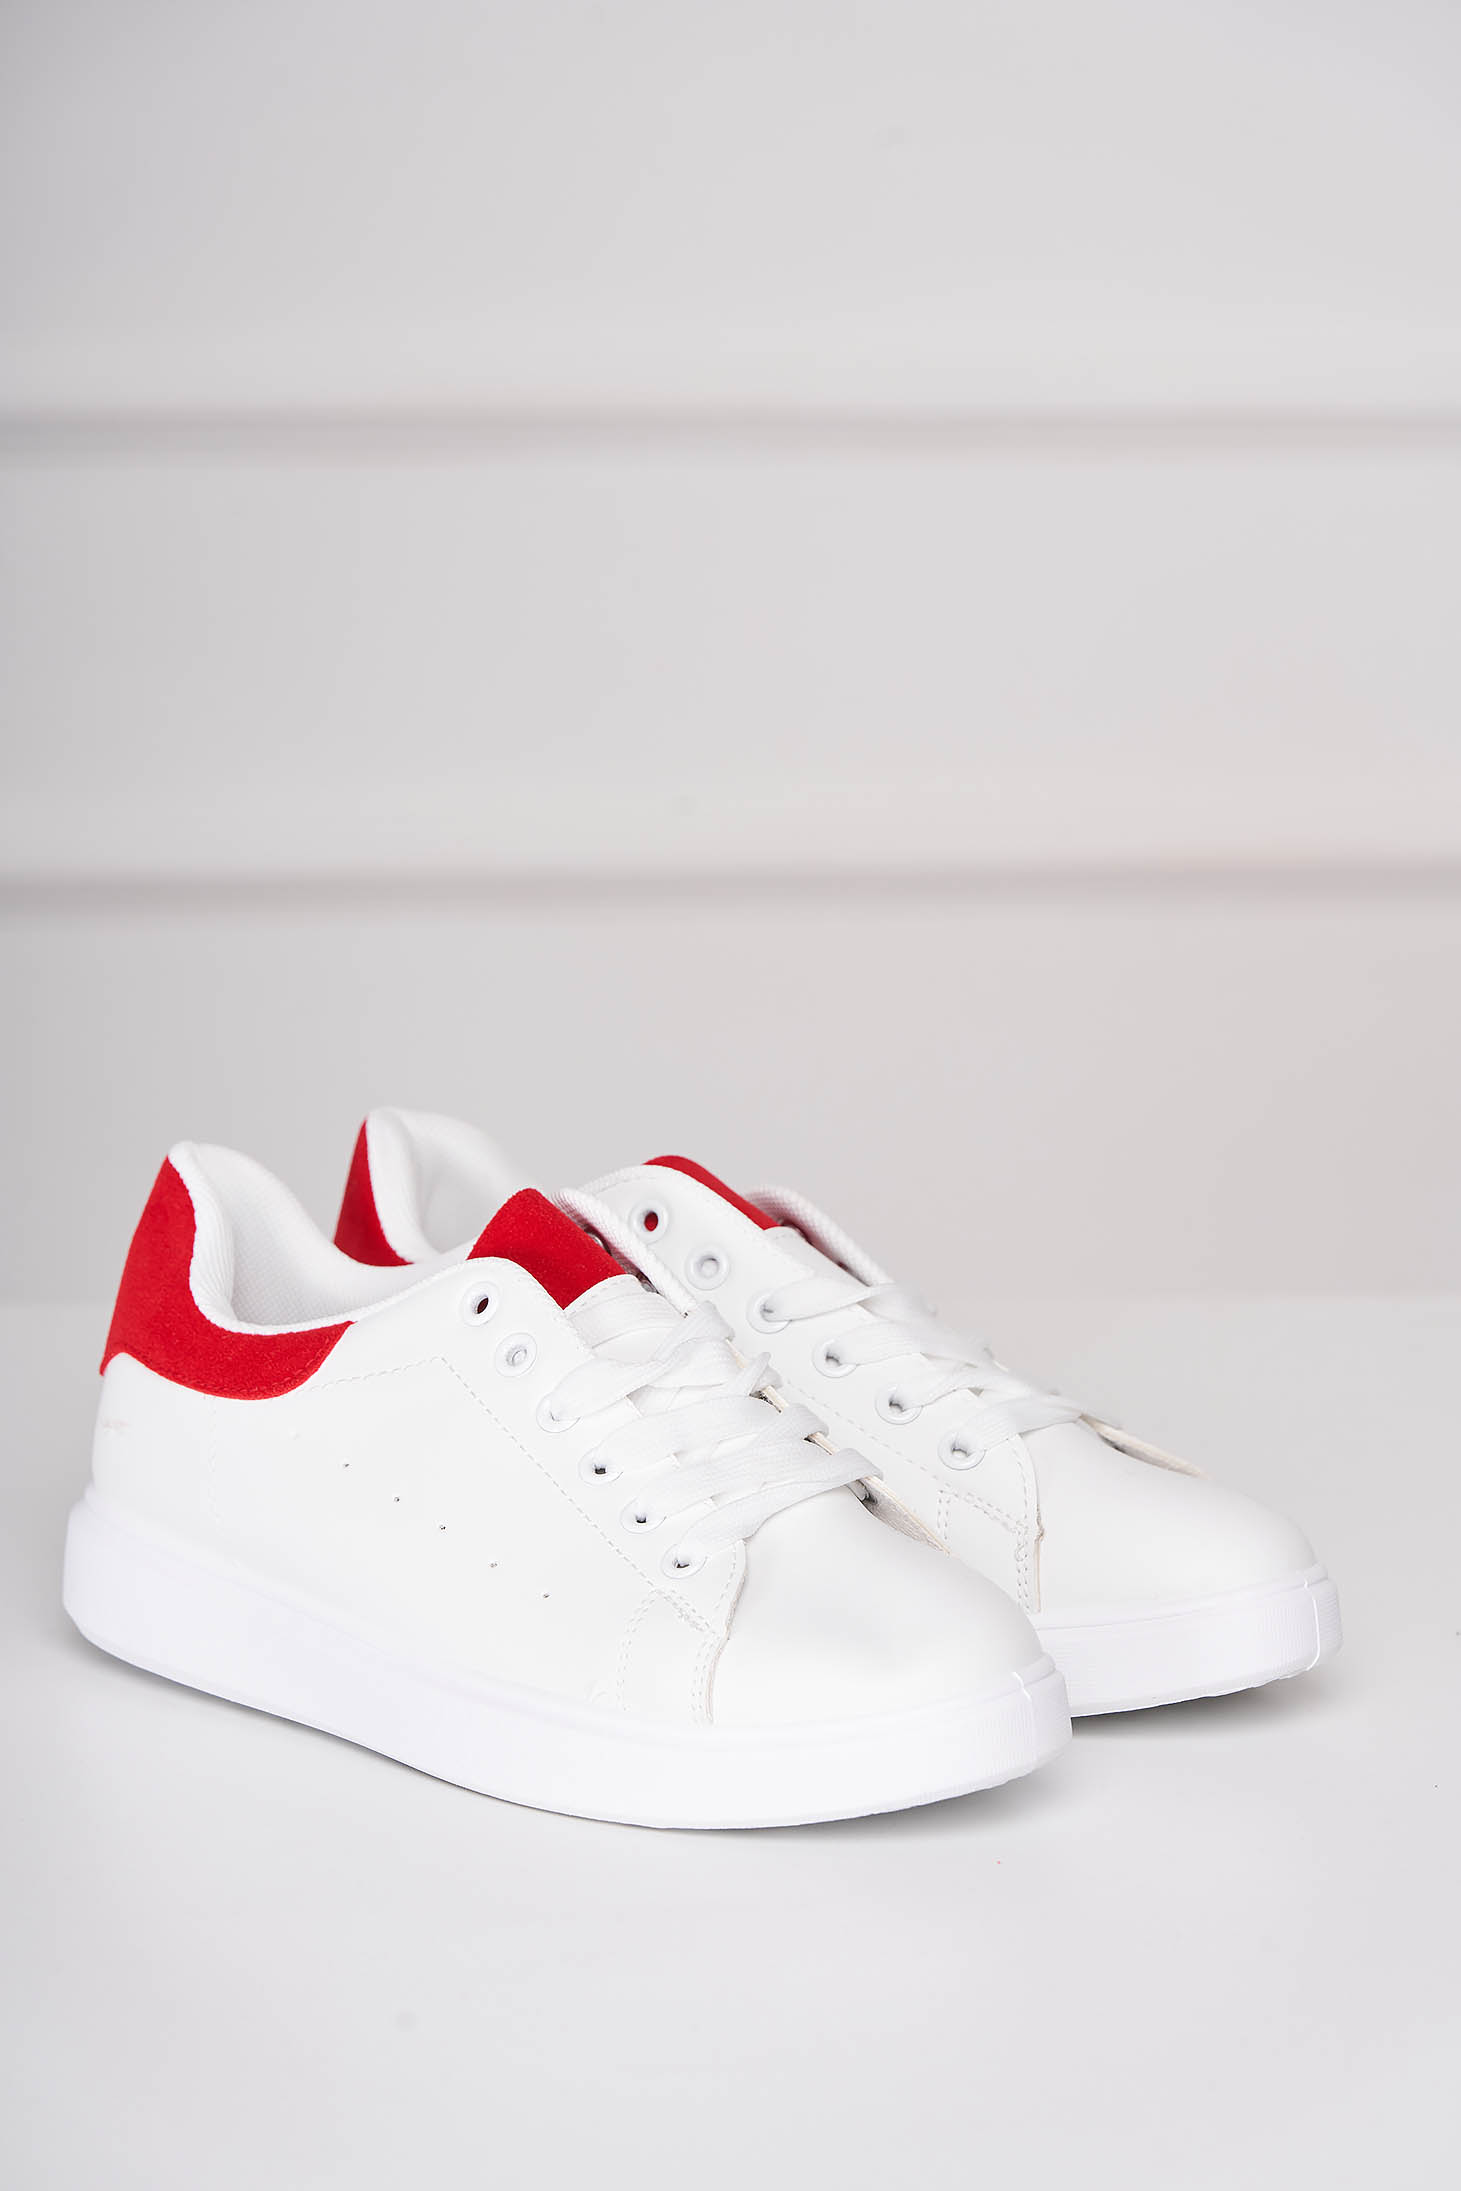 Red sneakers casual from ecological leather with lace